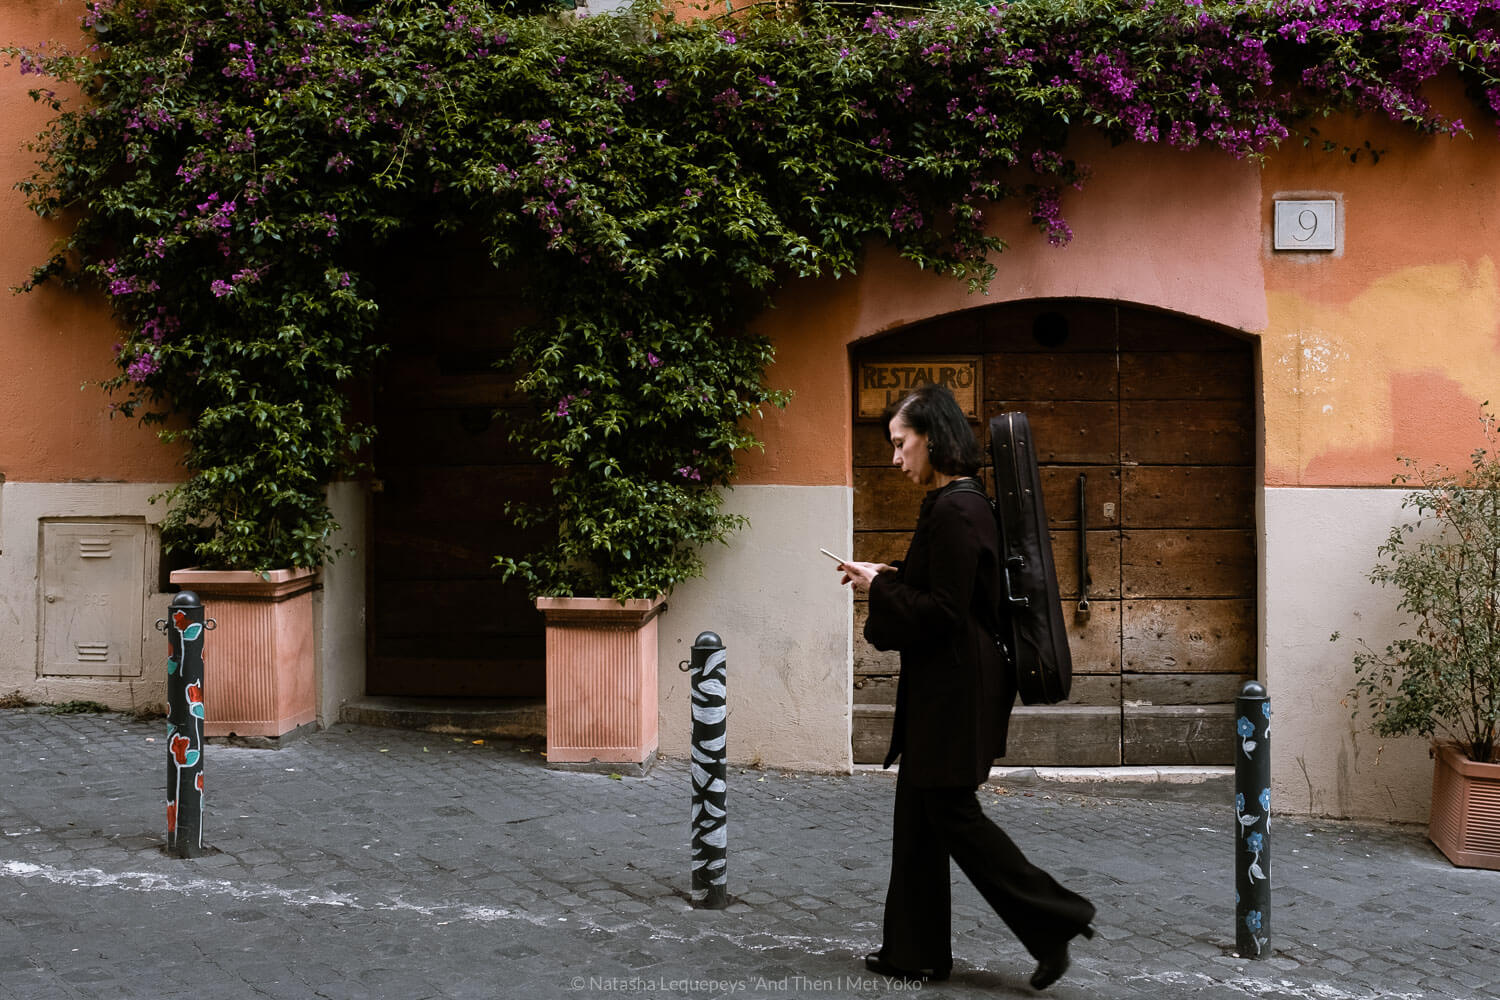 """A woman walking in Monti, Rome, Italy. Travel photography and guide by © Natasha Lequepeys for """"And Then I Met Yoko"""". #rome #italy #travelblog #travelphotography"""